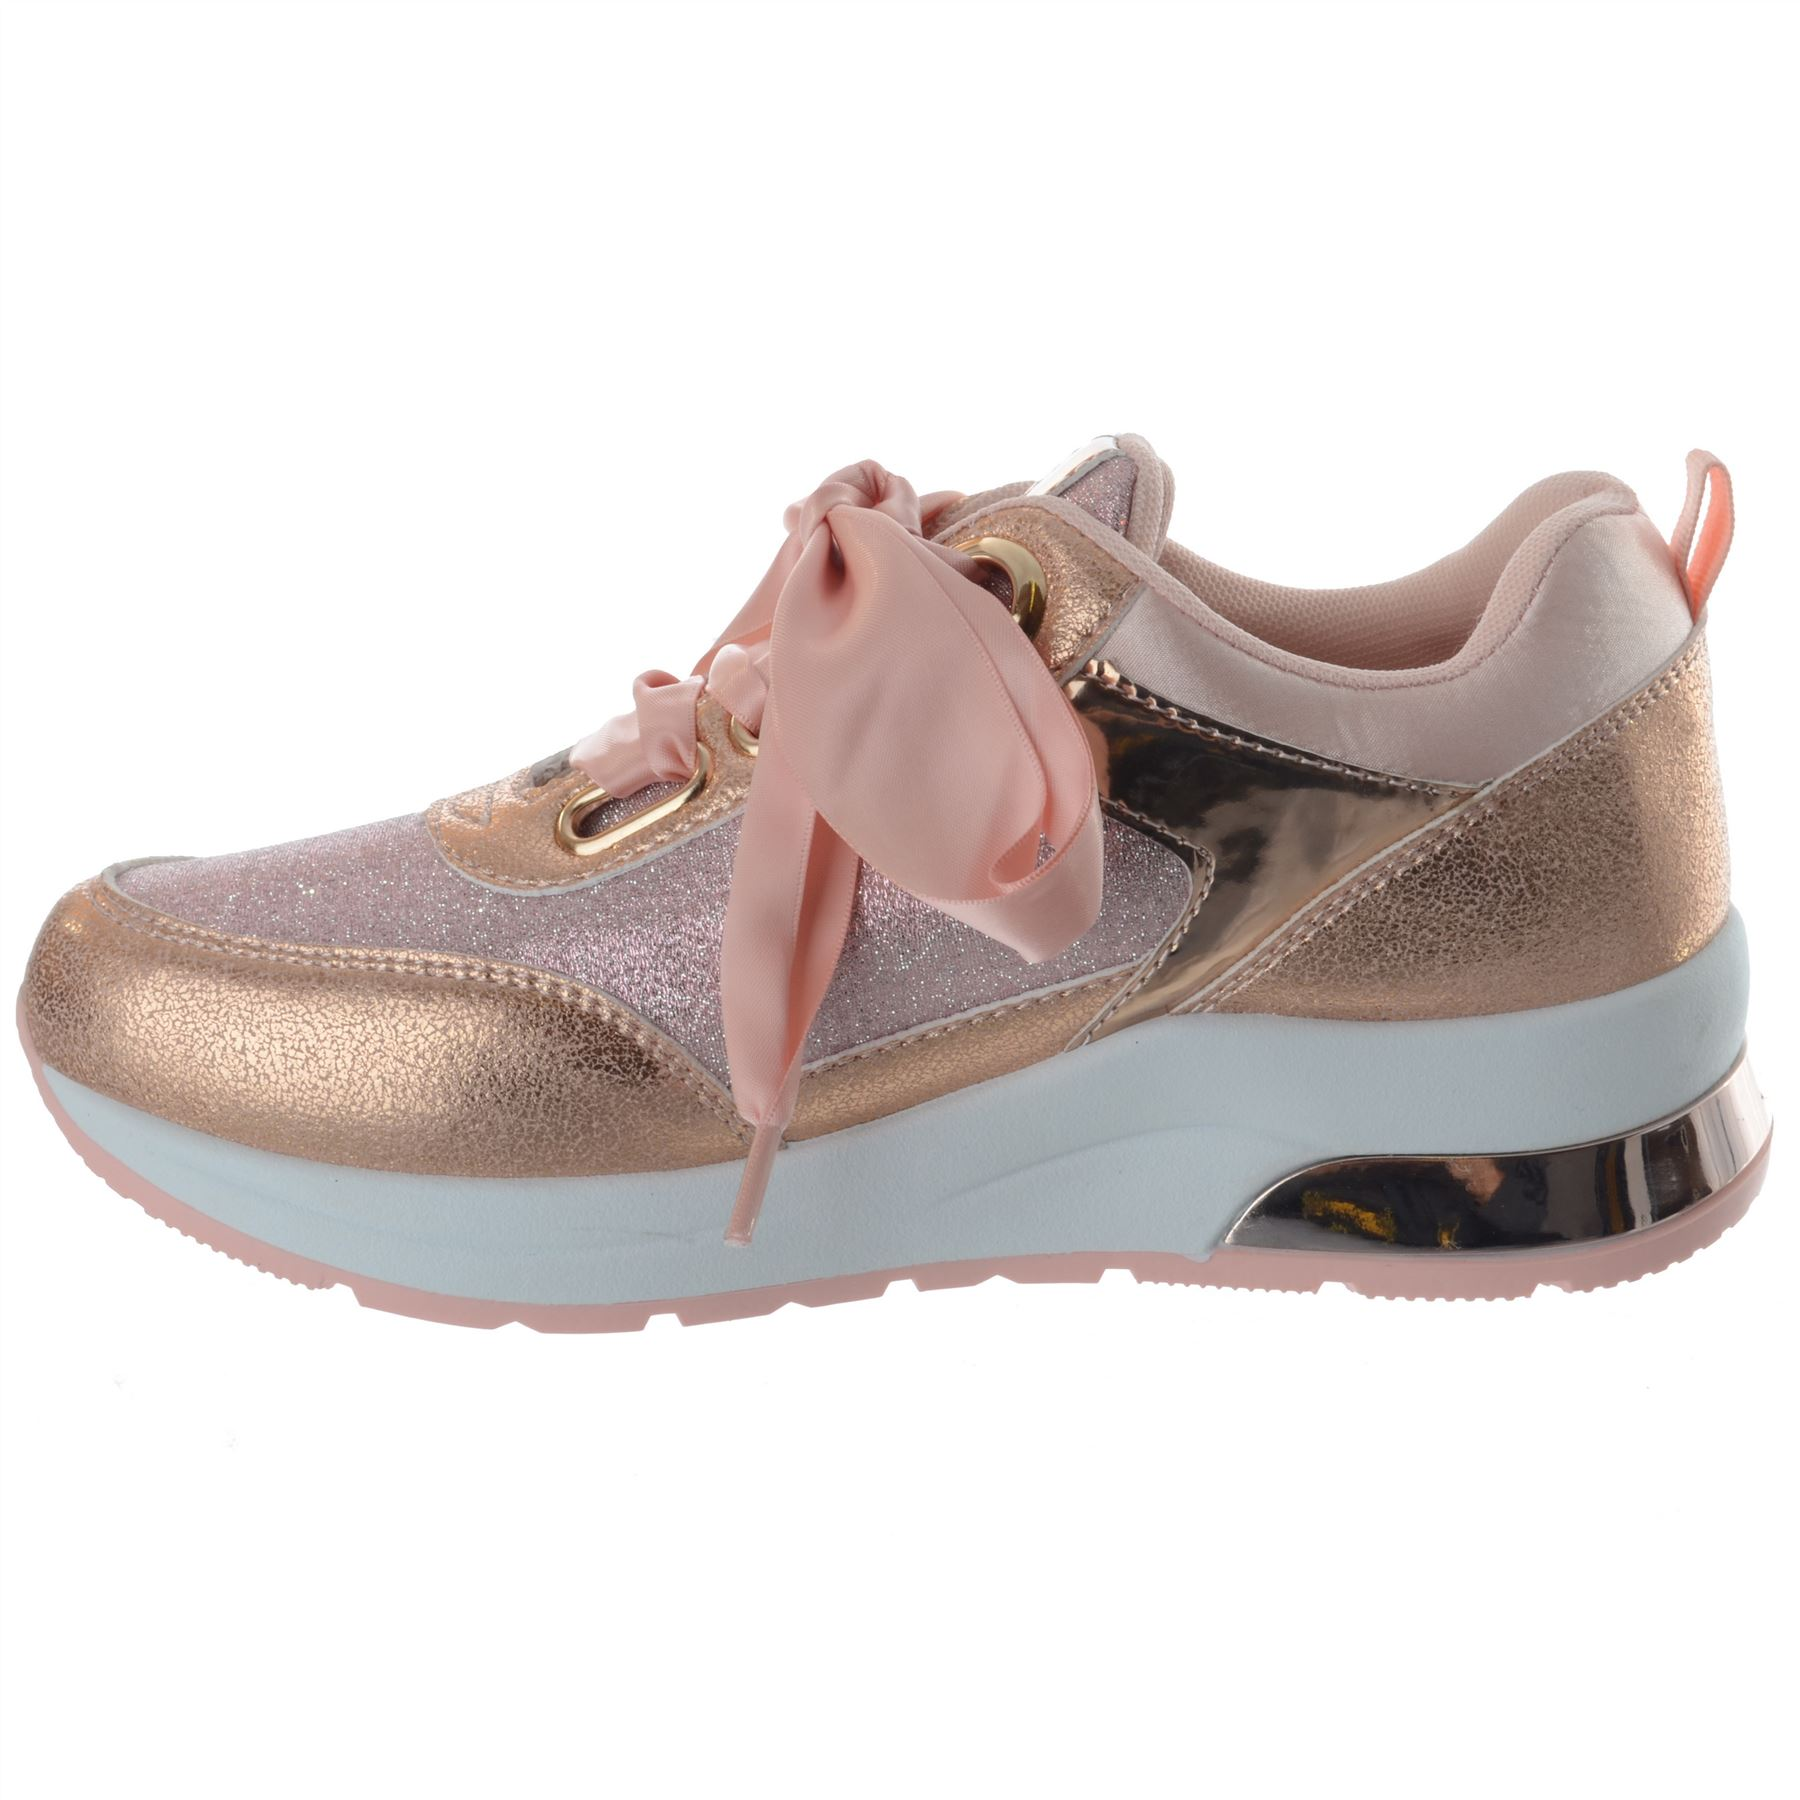 WOMENS LADIES GLITTER RIBBON LACE UP RUNNING FASHION SNEAKERS TRAINER SHOES SIZE